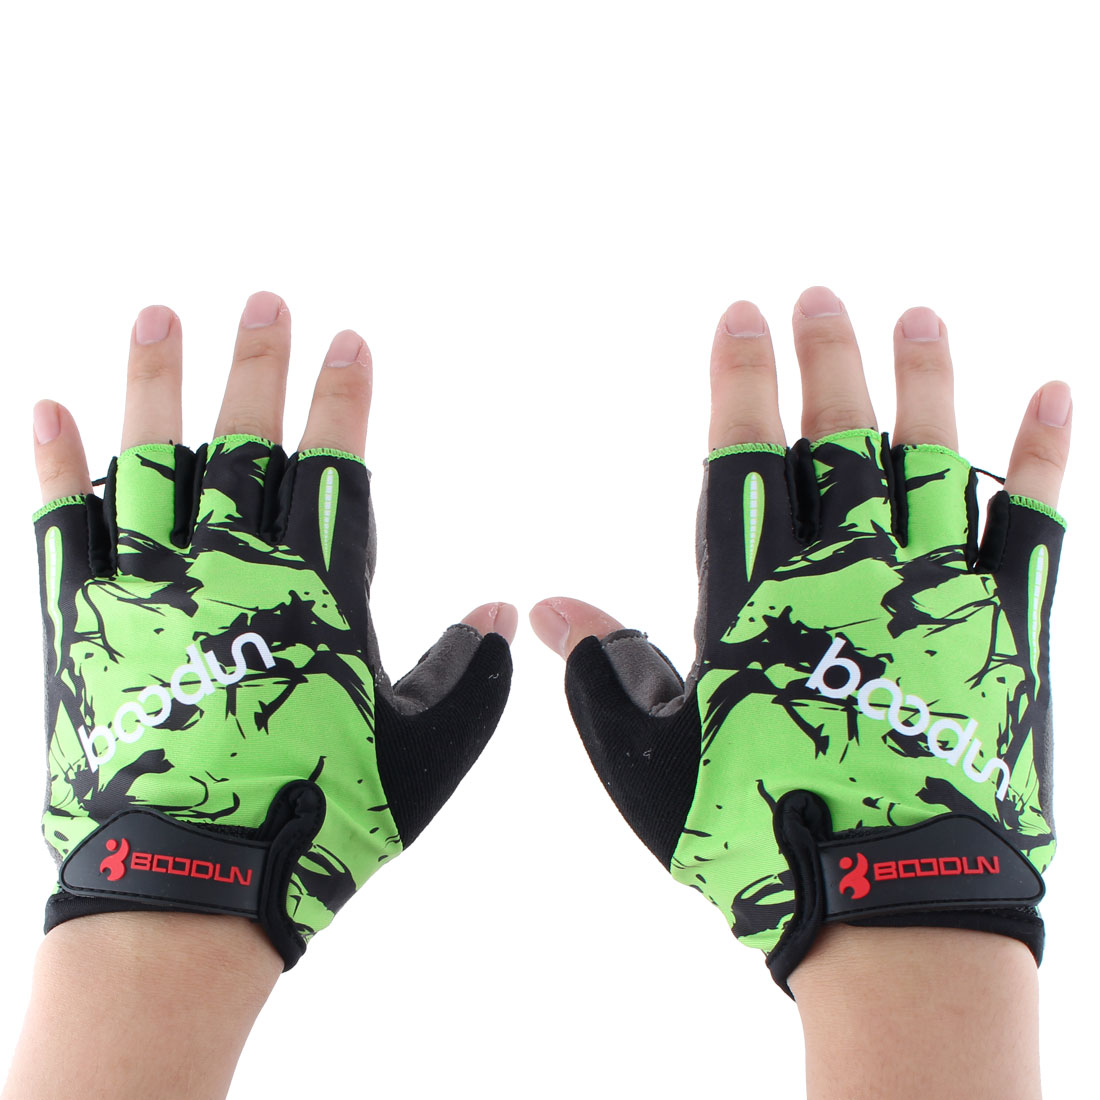 BOODUN Authorized Polyester Exercise Sports Gym Lifting Training Bodybuilding Protector Half Finger Fitness Gloves Green XXL Pair